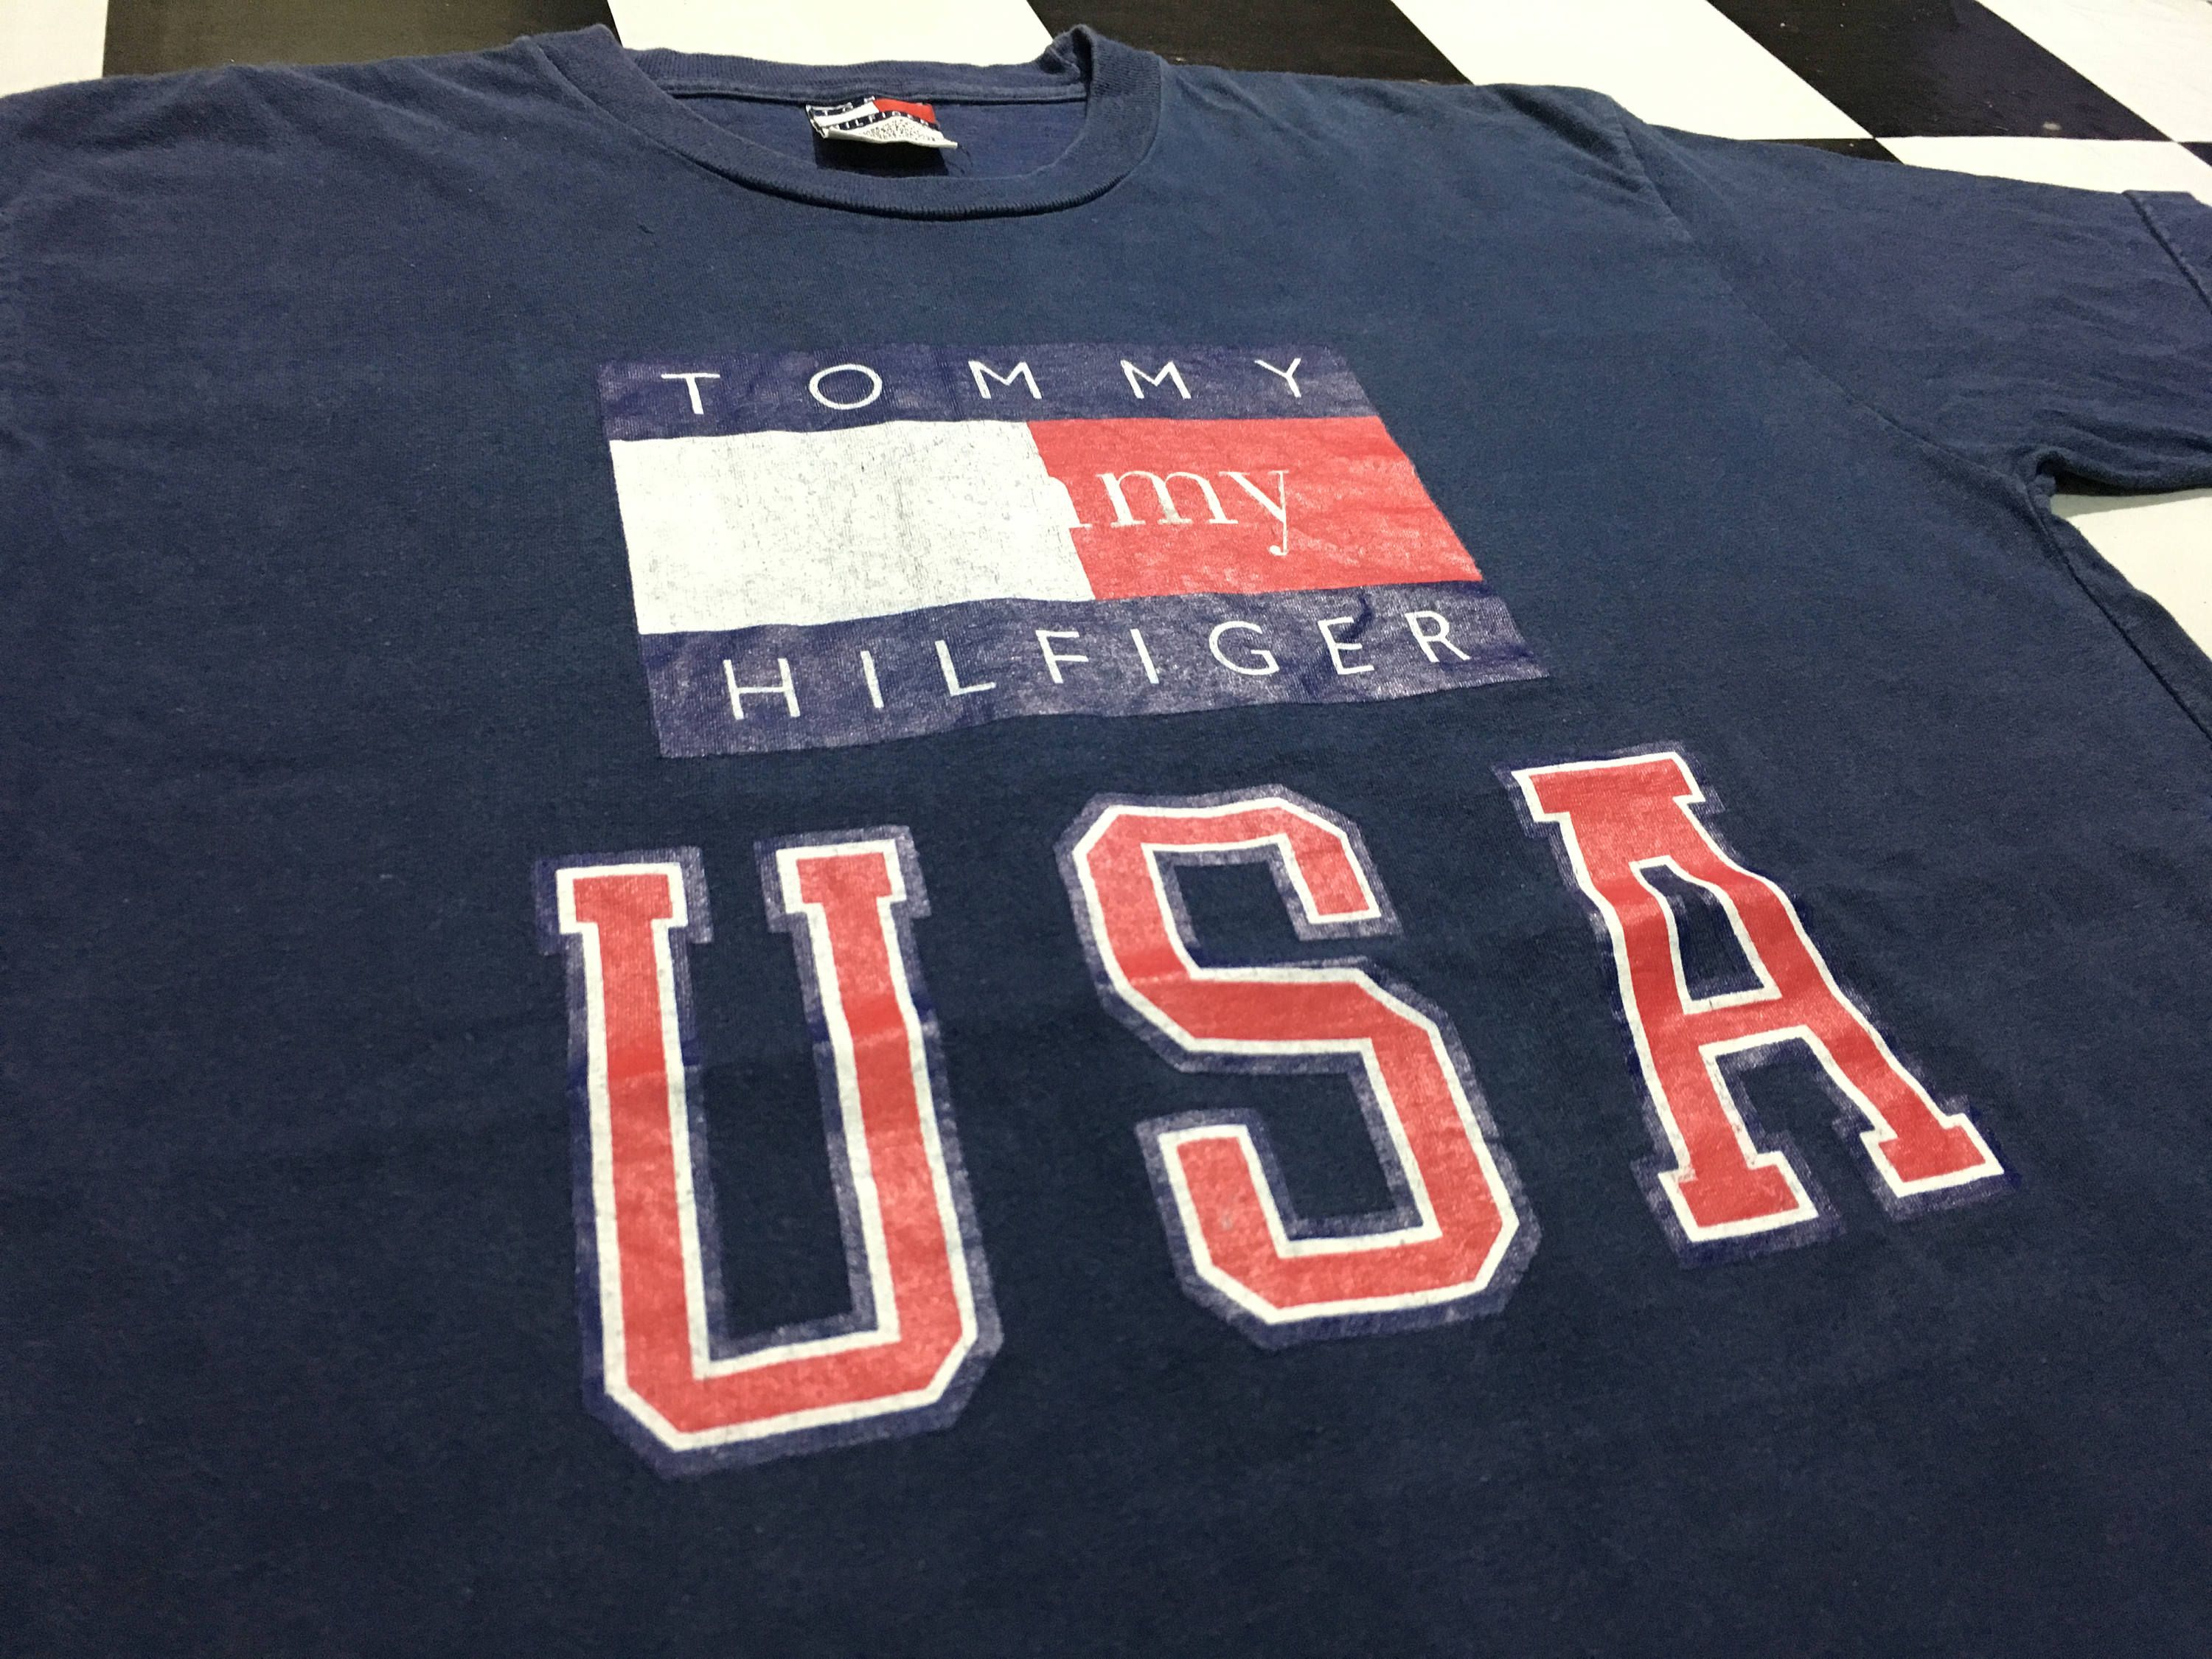 c4a88b4c4 Vintage Tommy hilfiger t shirt big flag logo spell out tommy hilfiger usa  Size L Made in usa Tommy usa box logo by AlivevintageShop on Etsy